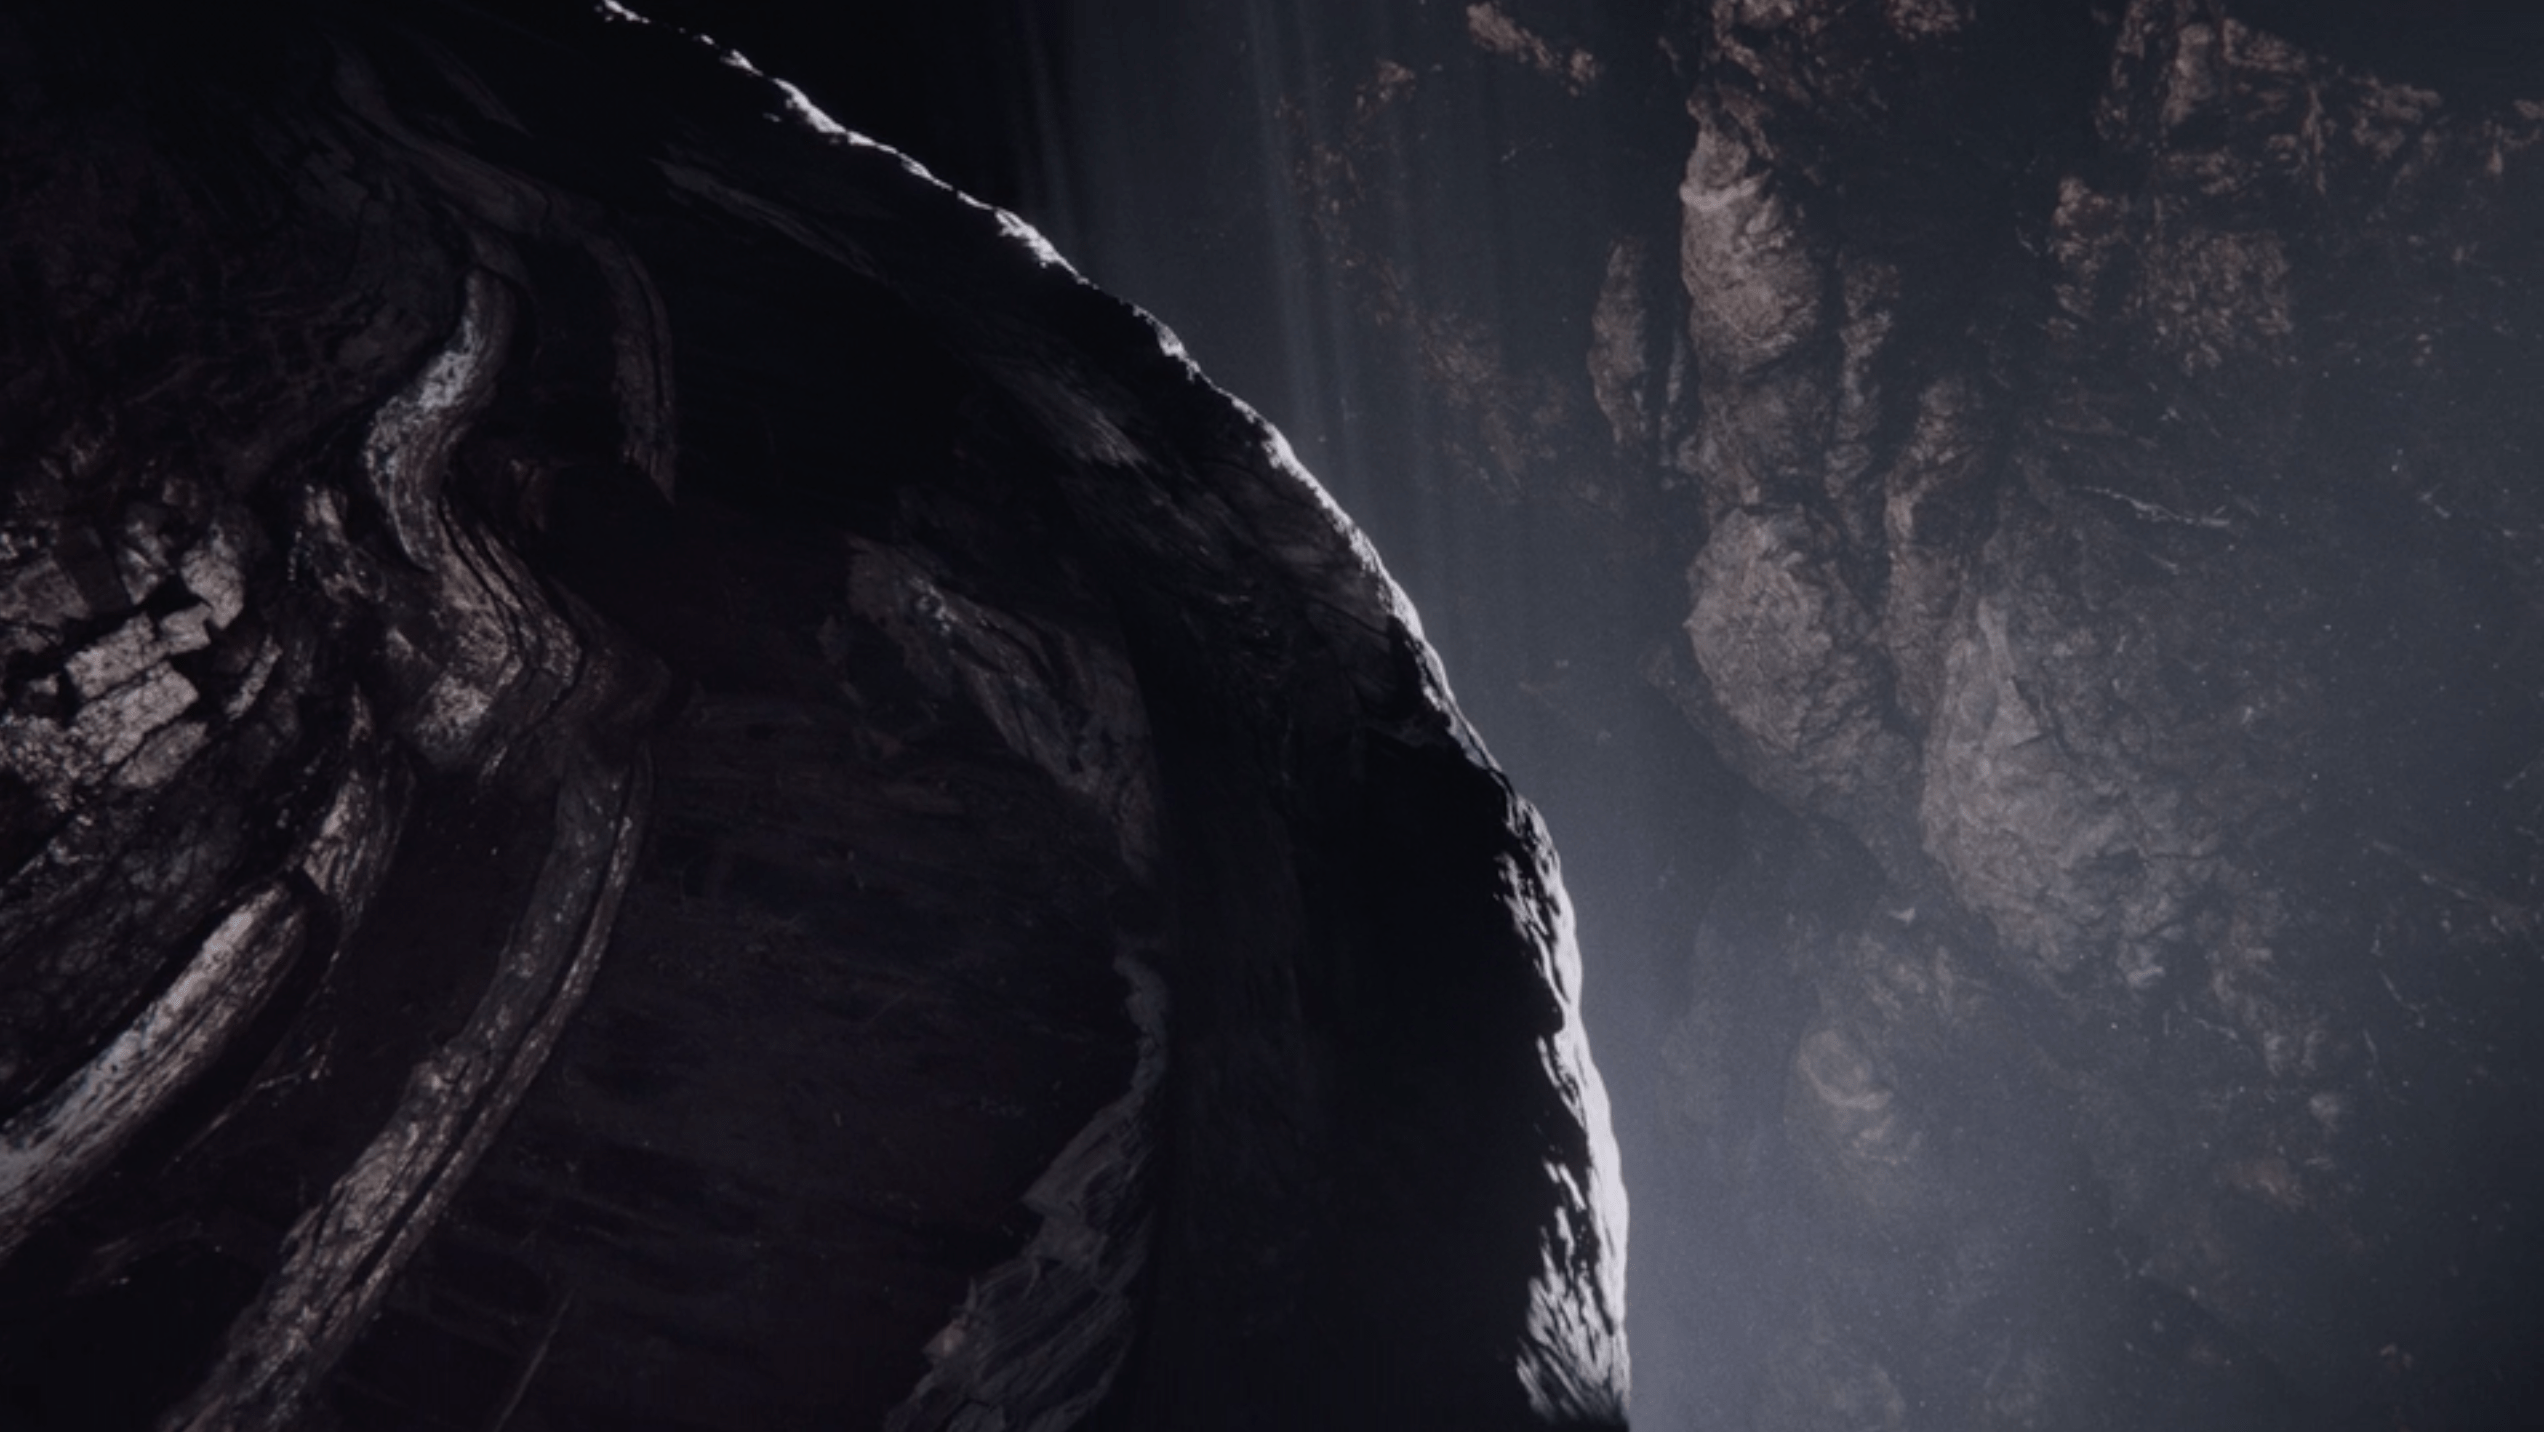 VFX dark cliffs revealing light